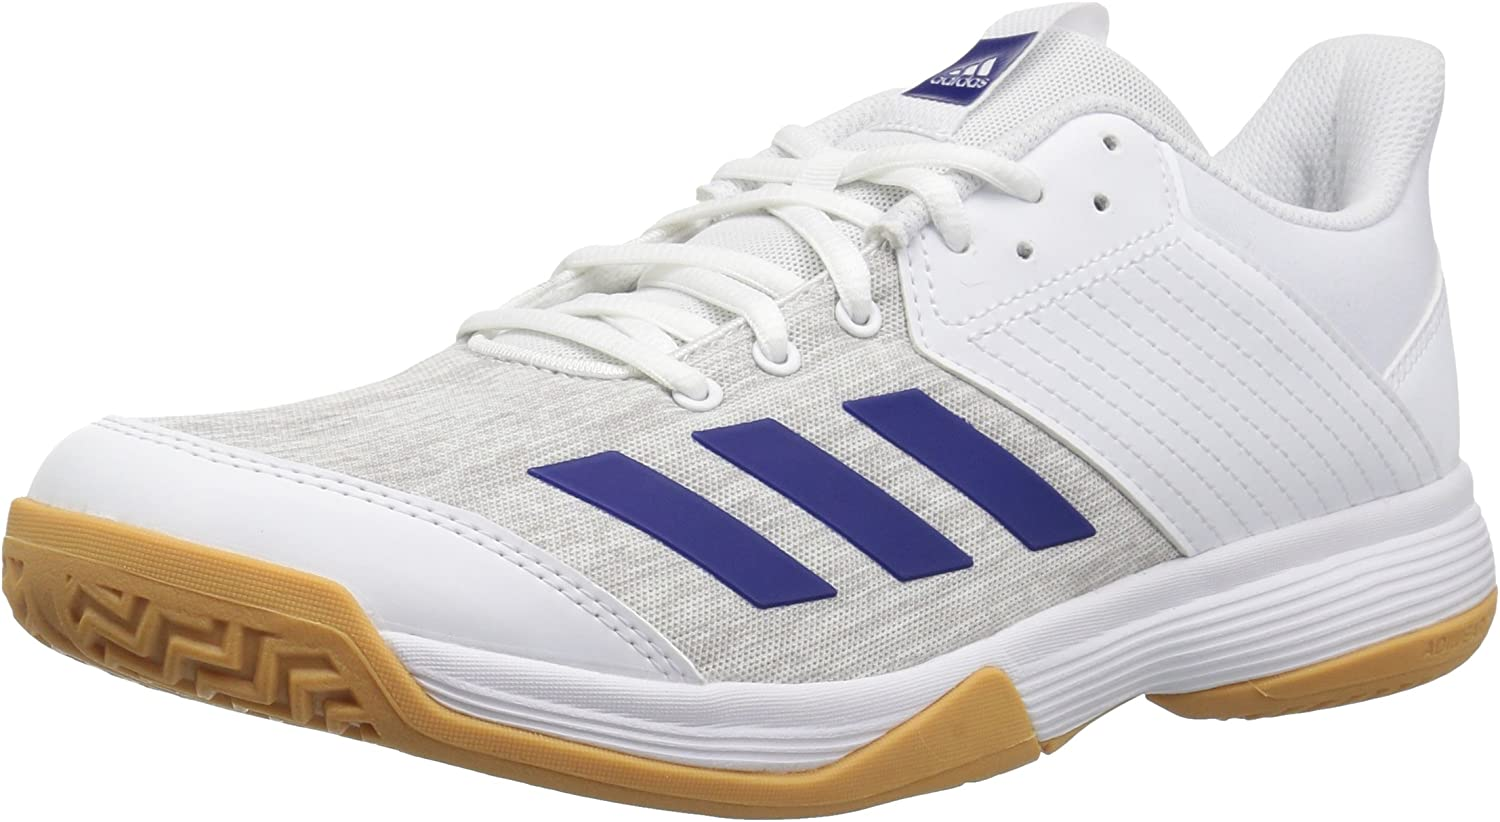 Adidas Mens Ligra 6 Volleyball shoes